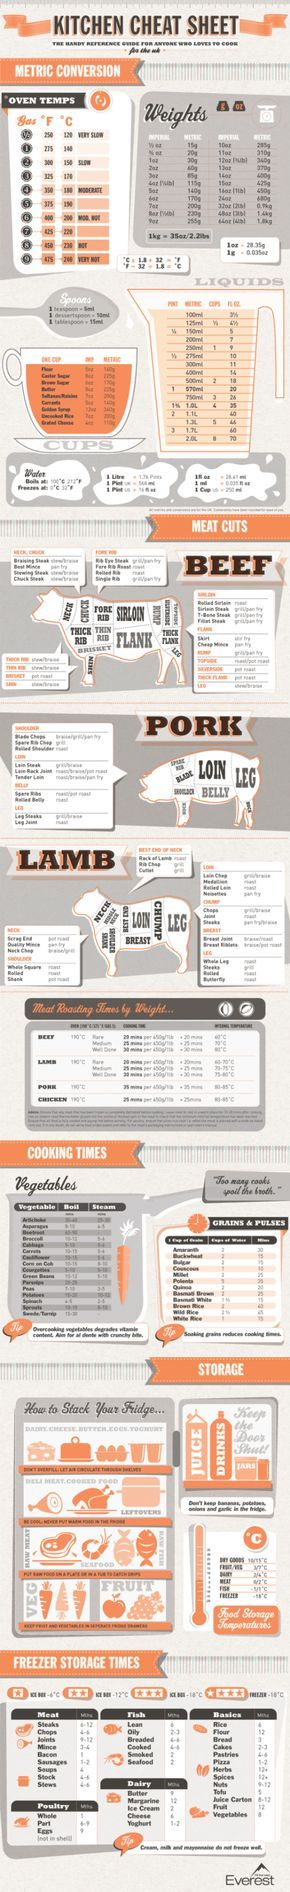 Kitchen Cheat Sheet - conversion charts, meat cuts and cooking time - Time Conversion Chart